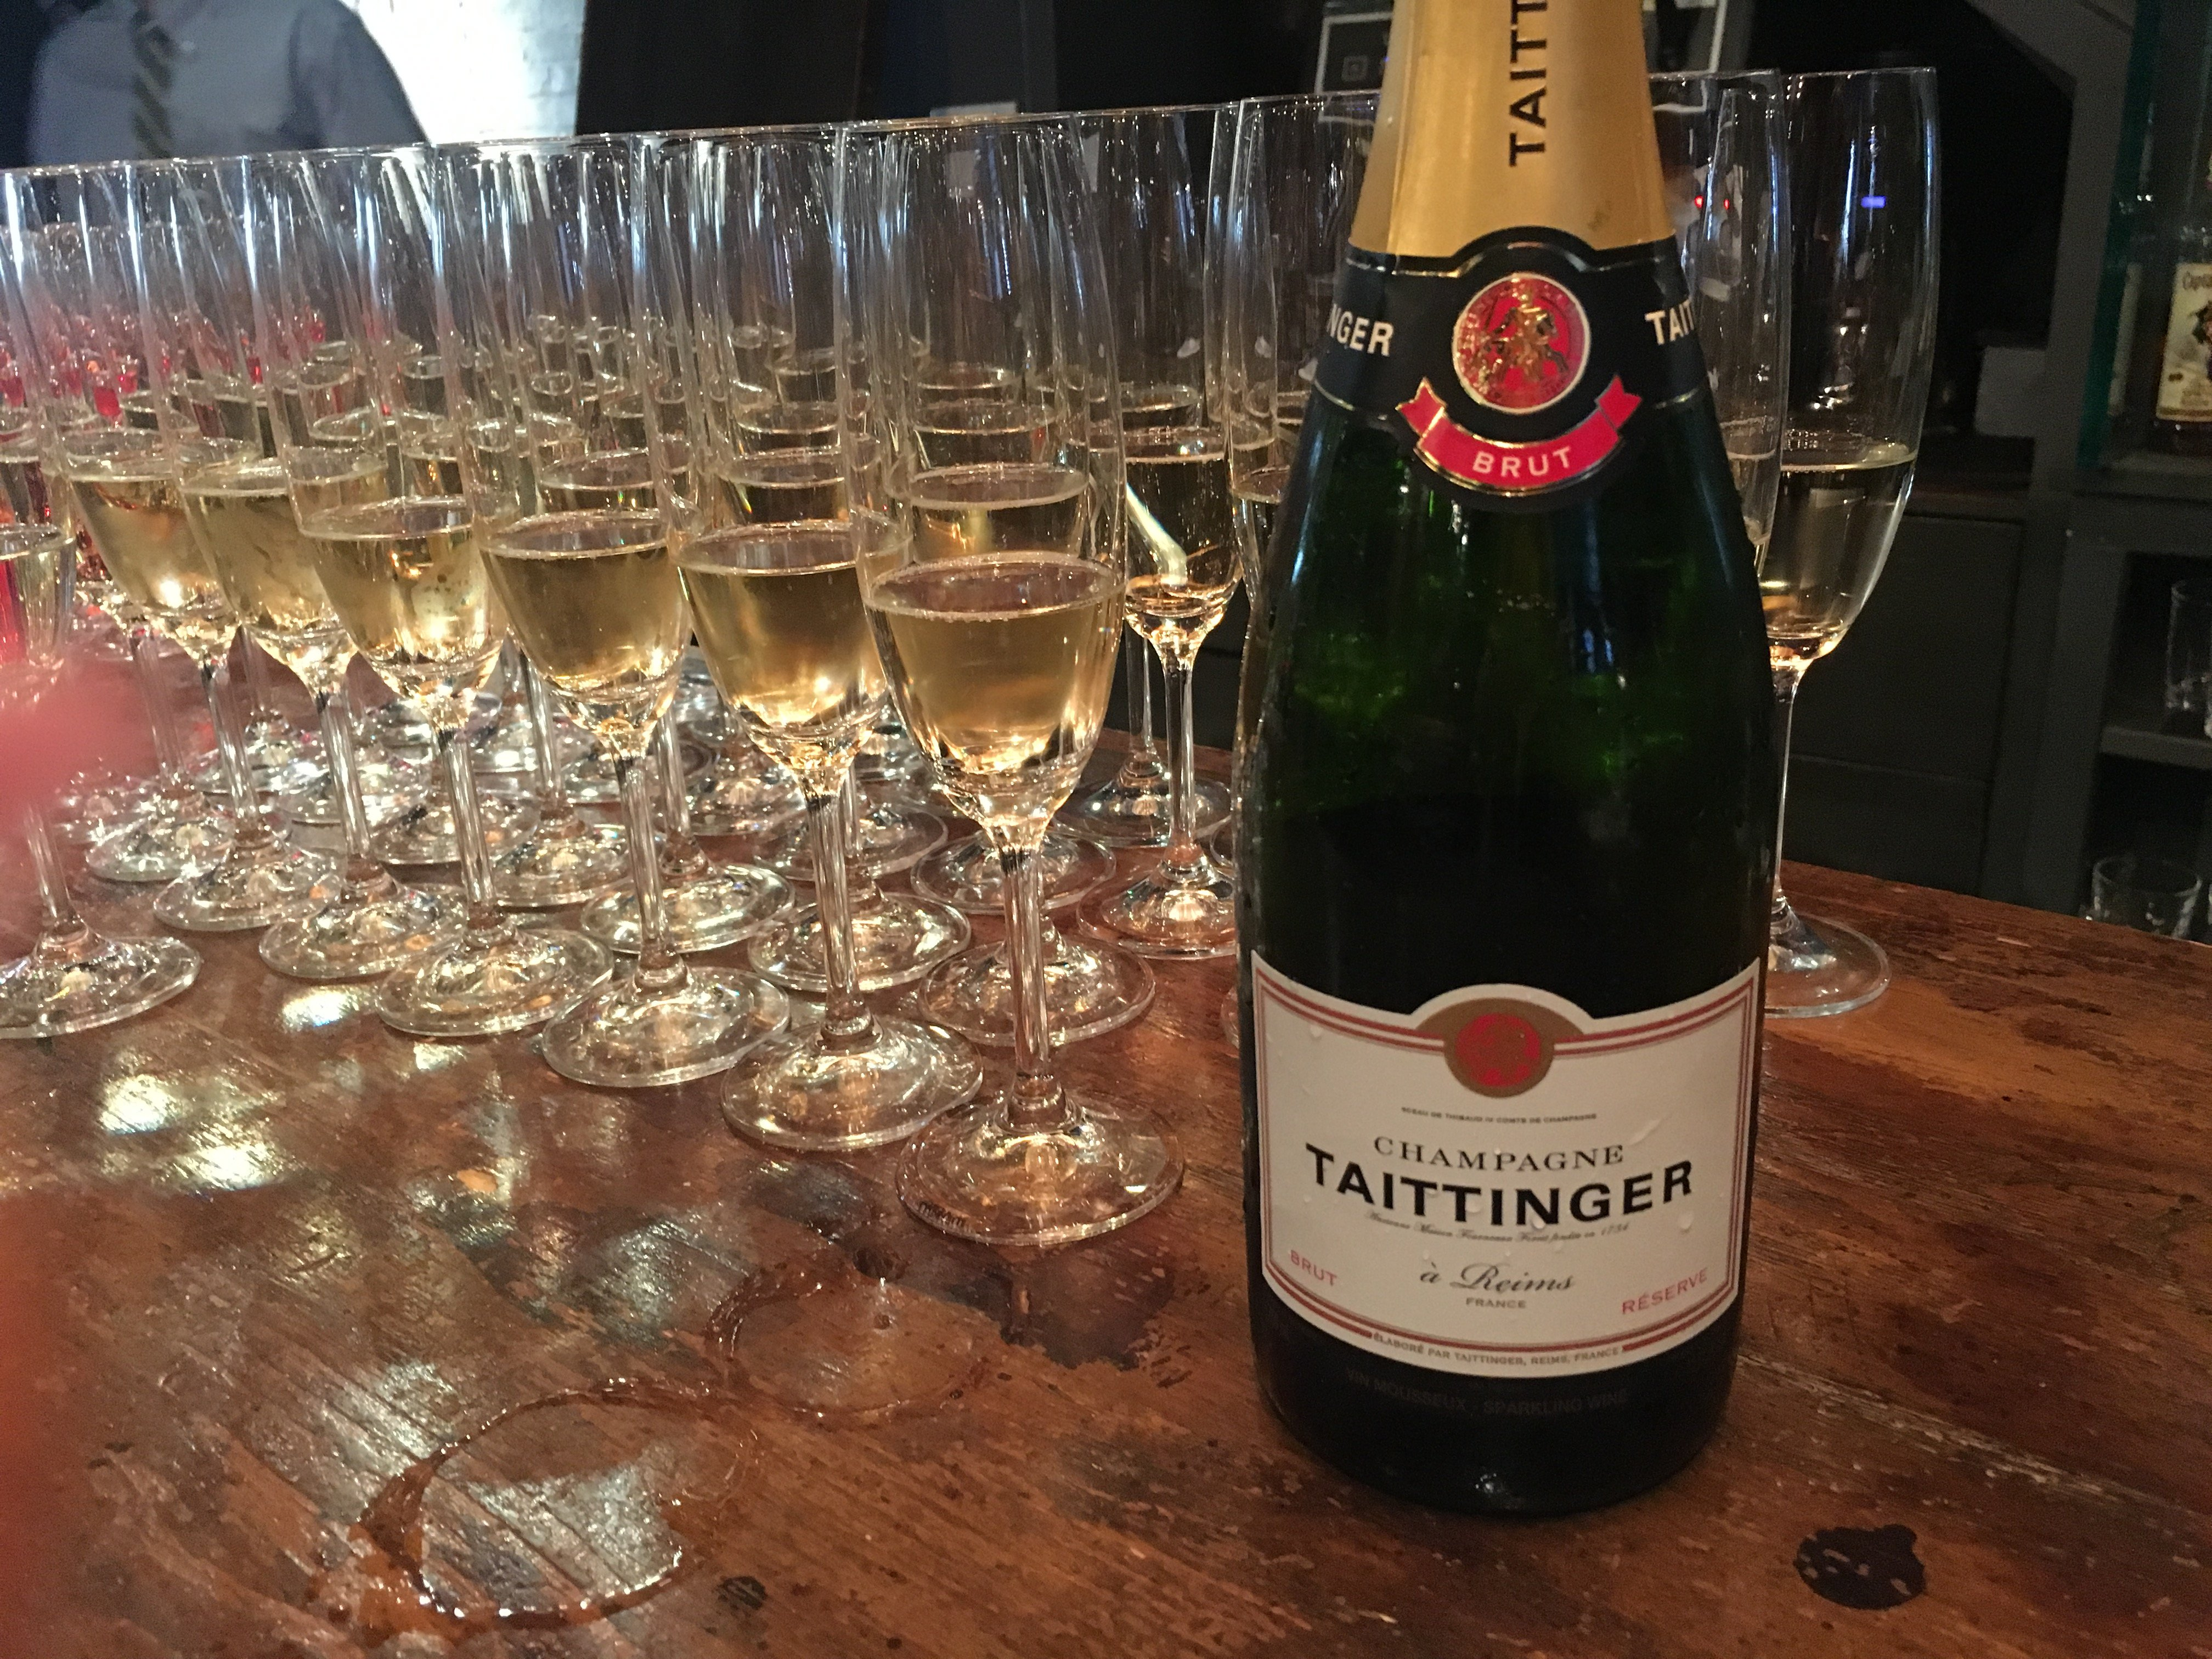 Reception after the structured tasting featured the Taittinger Brut Reserve Champagne